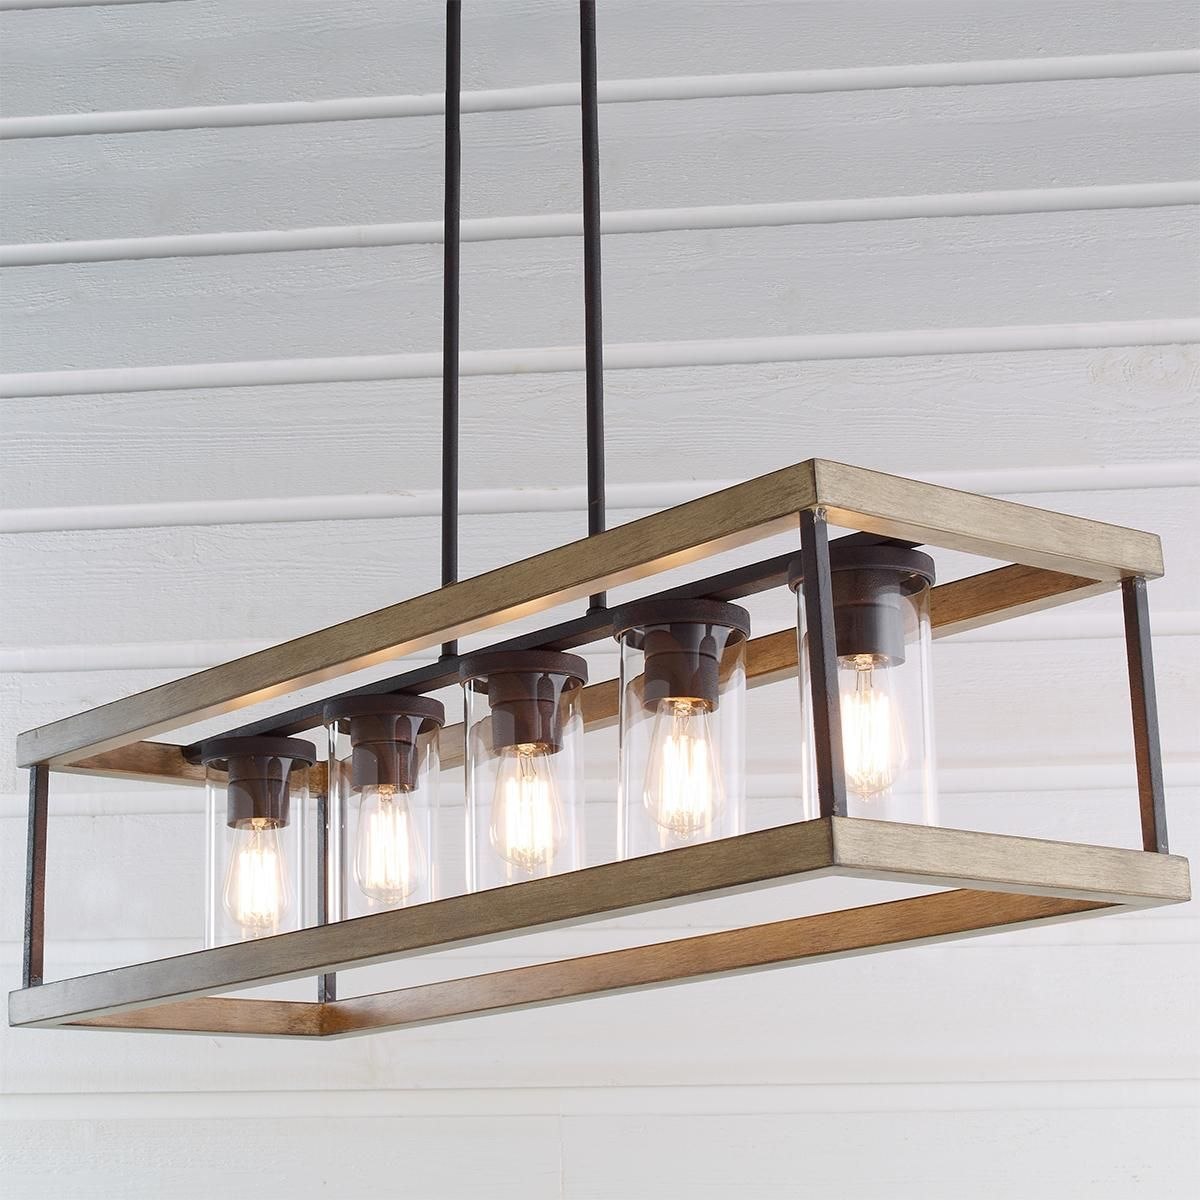 Indooroutdoor rectangular rustic chandelier aloadofball Images